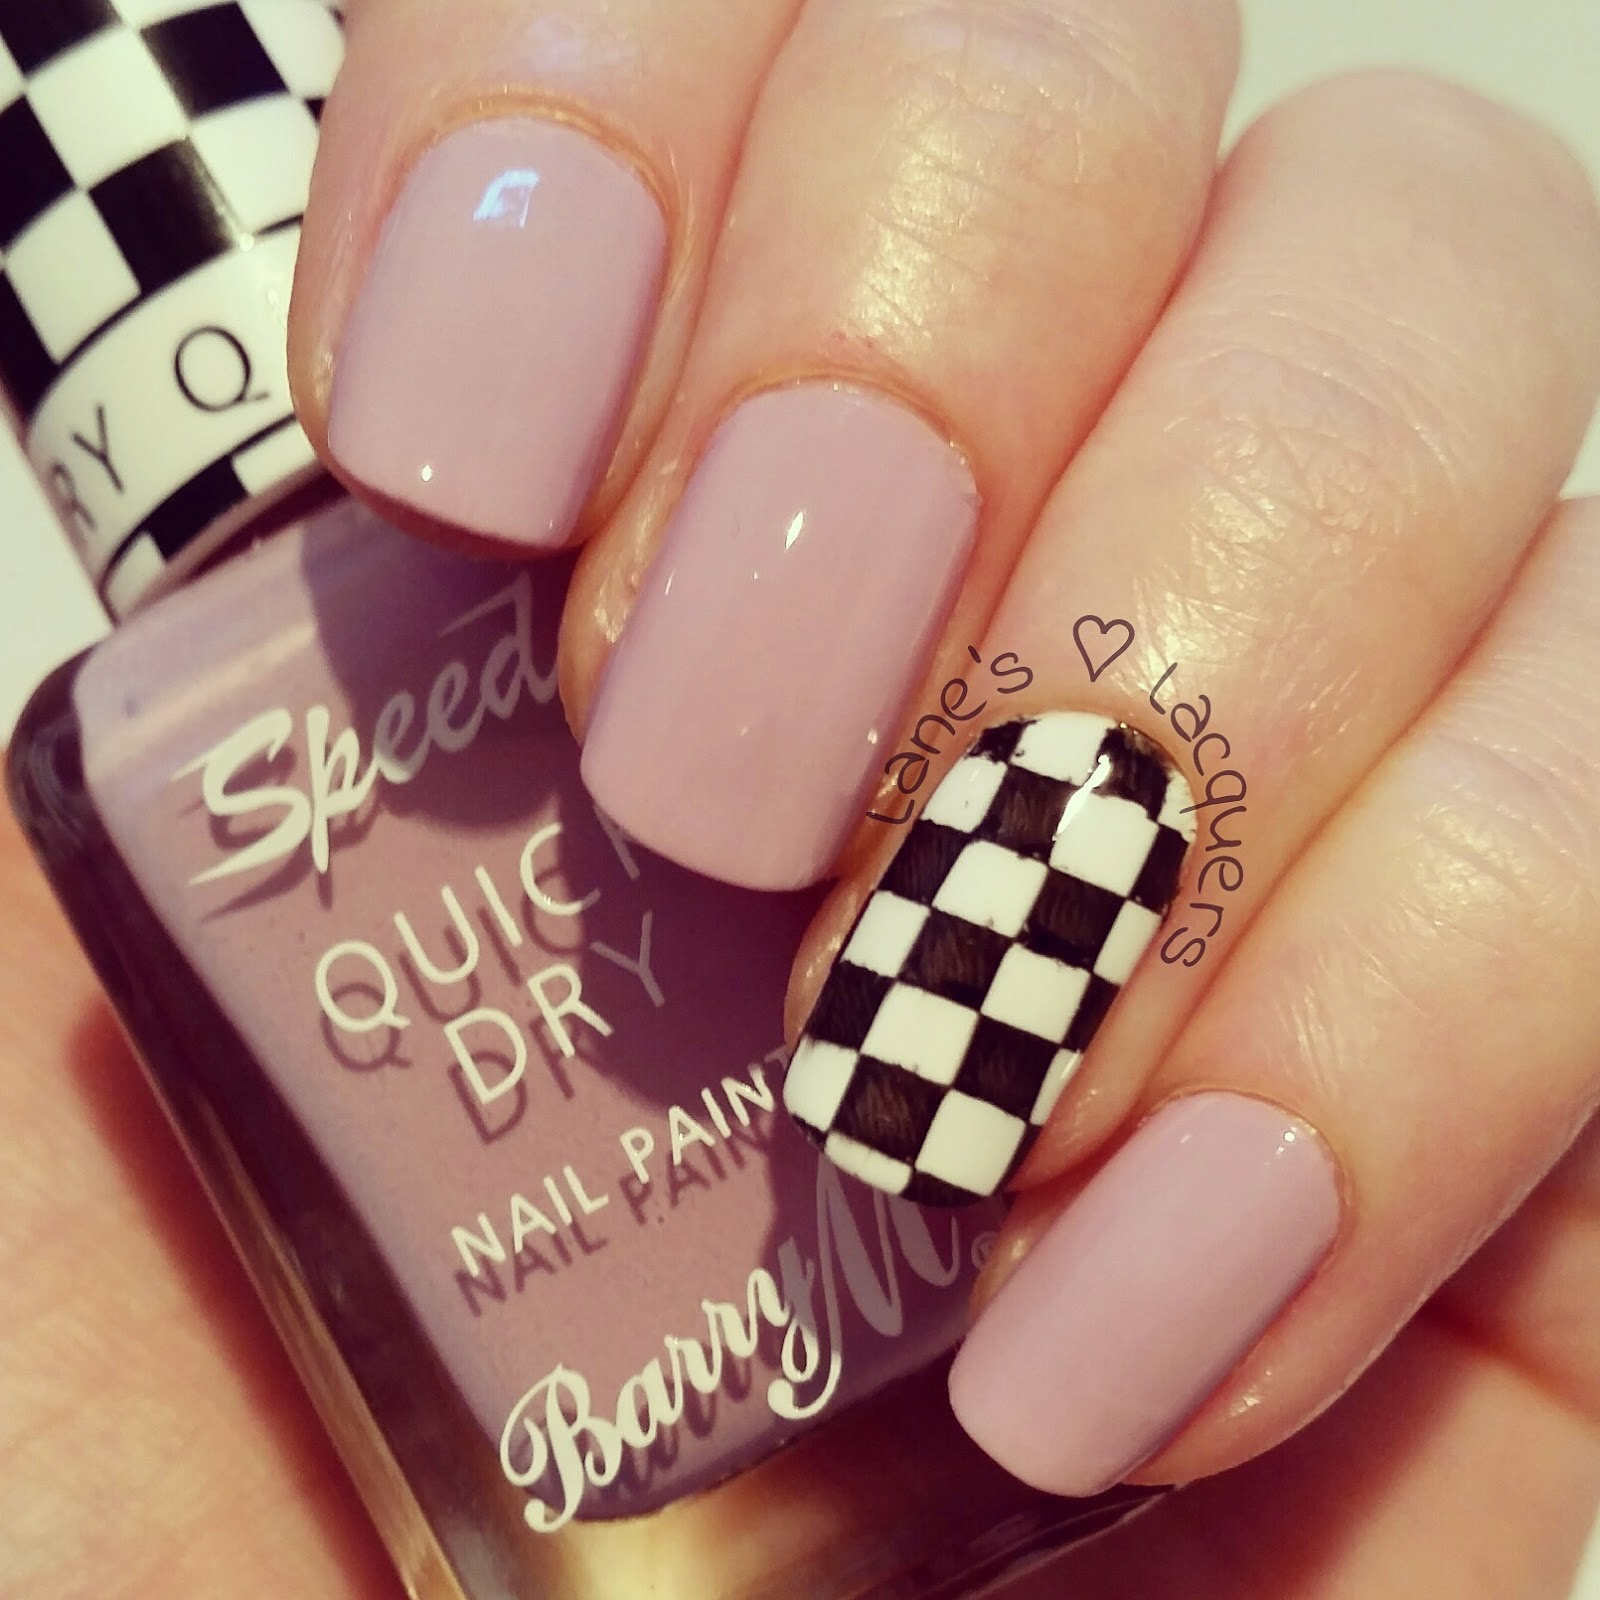 new-barry-m-speedy-quick-dry-lap-of-honour-swatch-manicure (2)